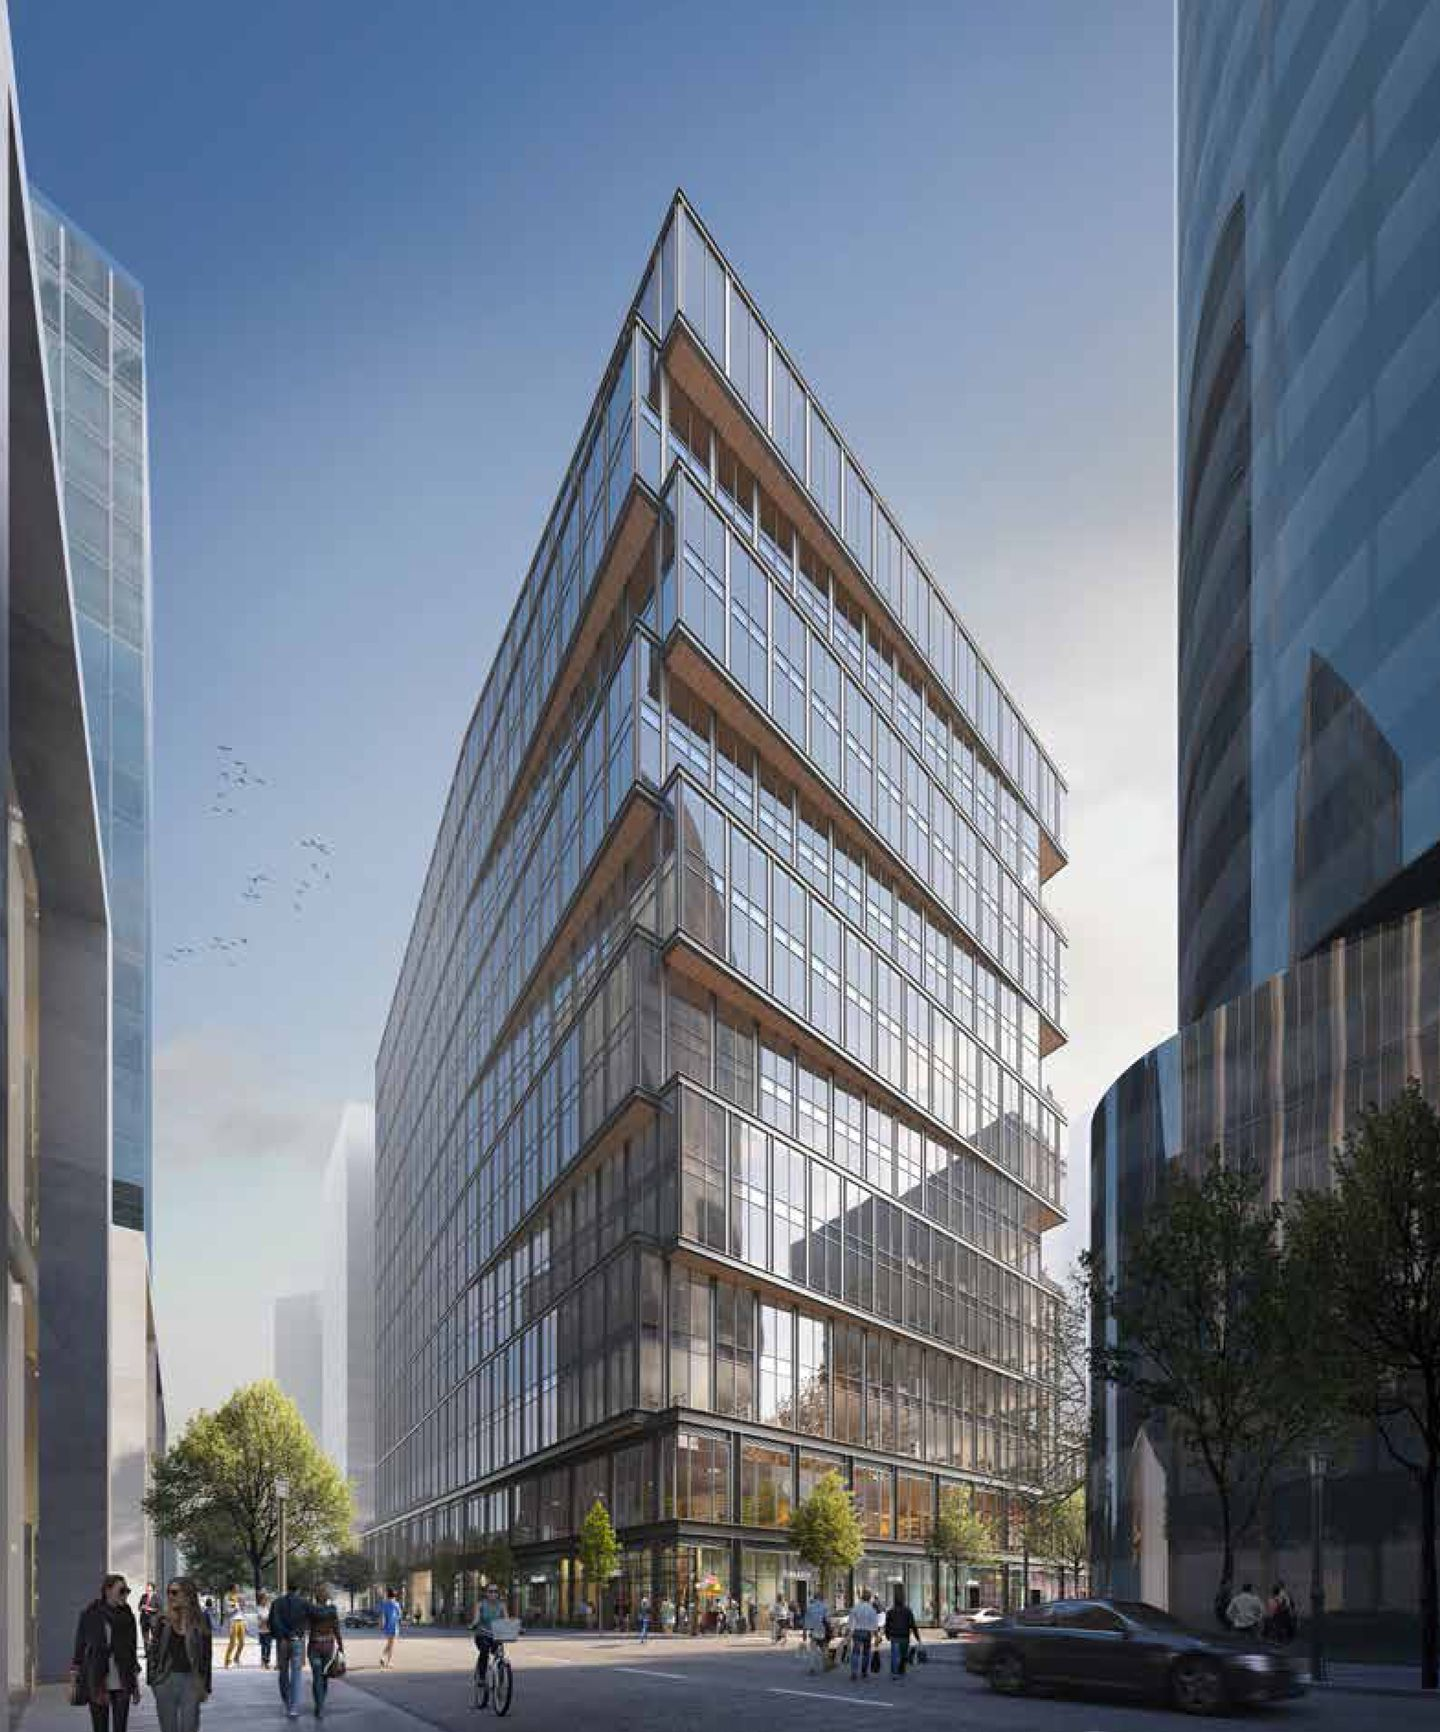 Amazon First Company: Here's A Look At Amazon's New Building In Boston's Seaport